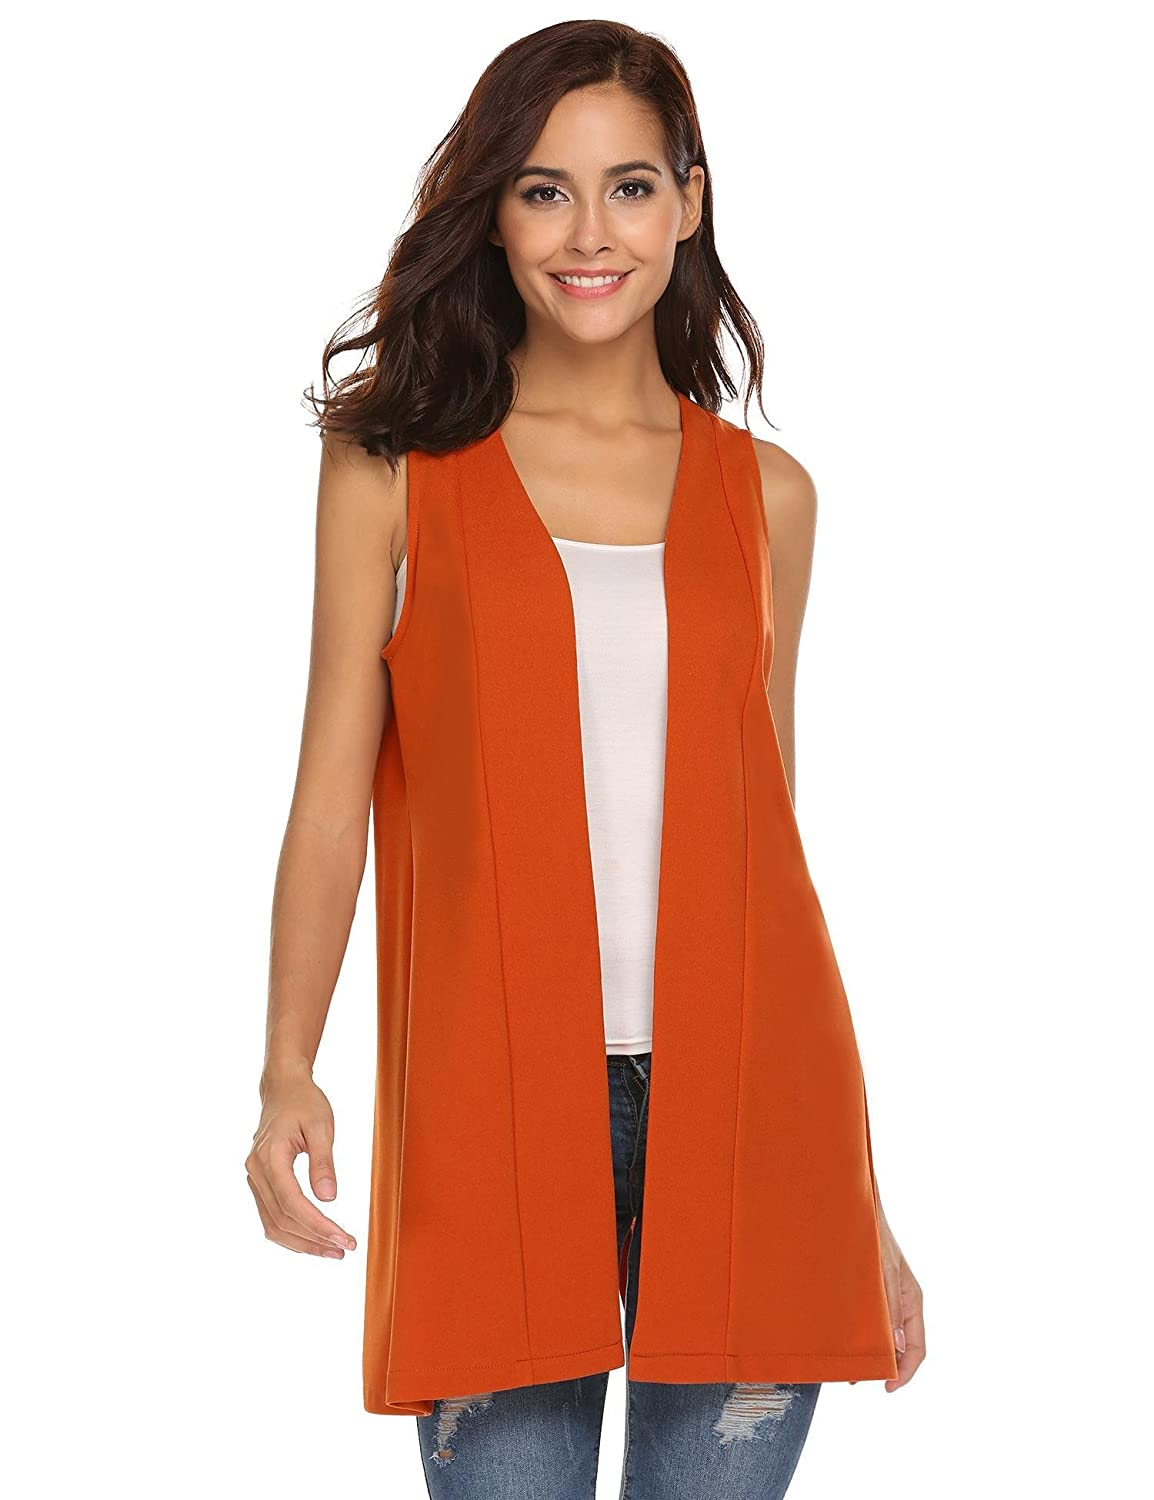 91e30f0f92c19 Zeagoo Women s Sleeveless Open Front Solid Color Long Vest Cardigan at  Amazon Women s Clothing store